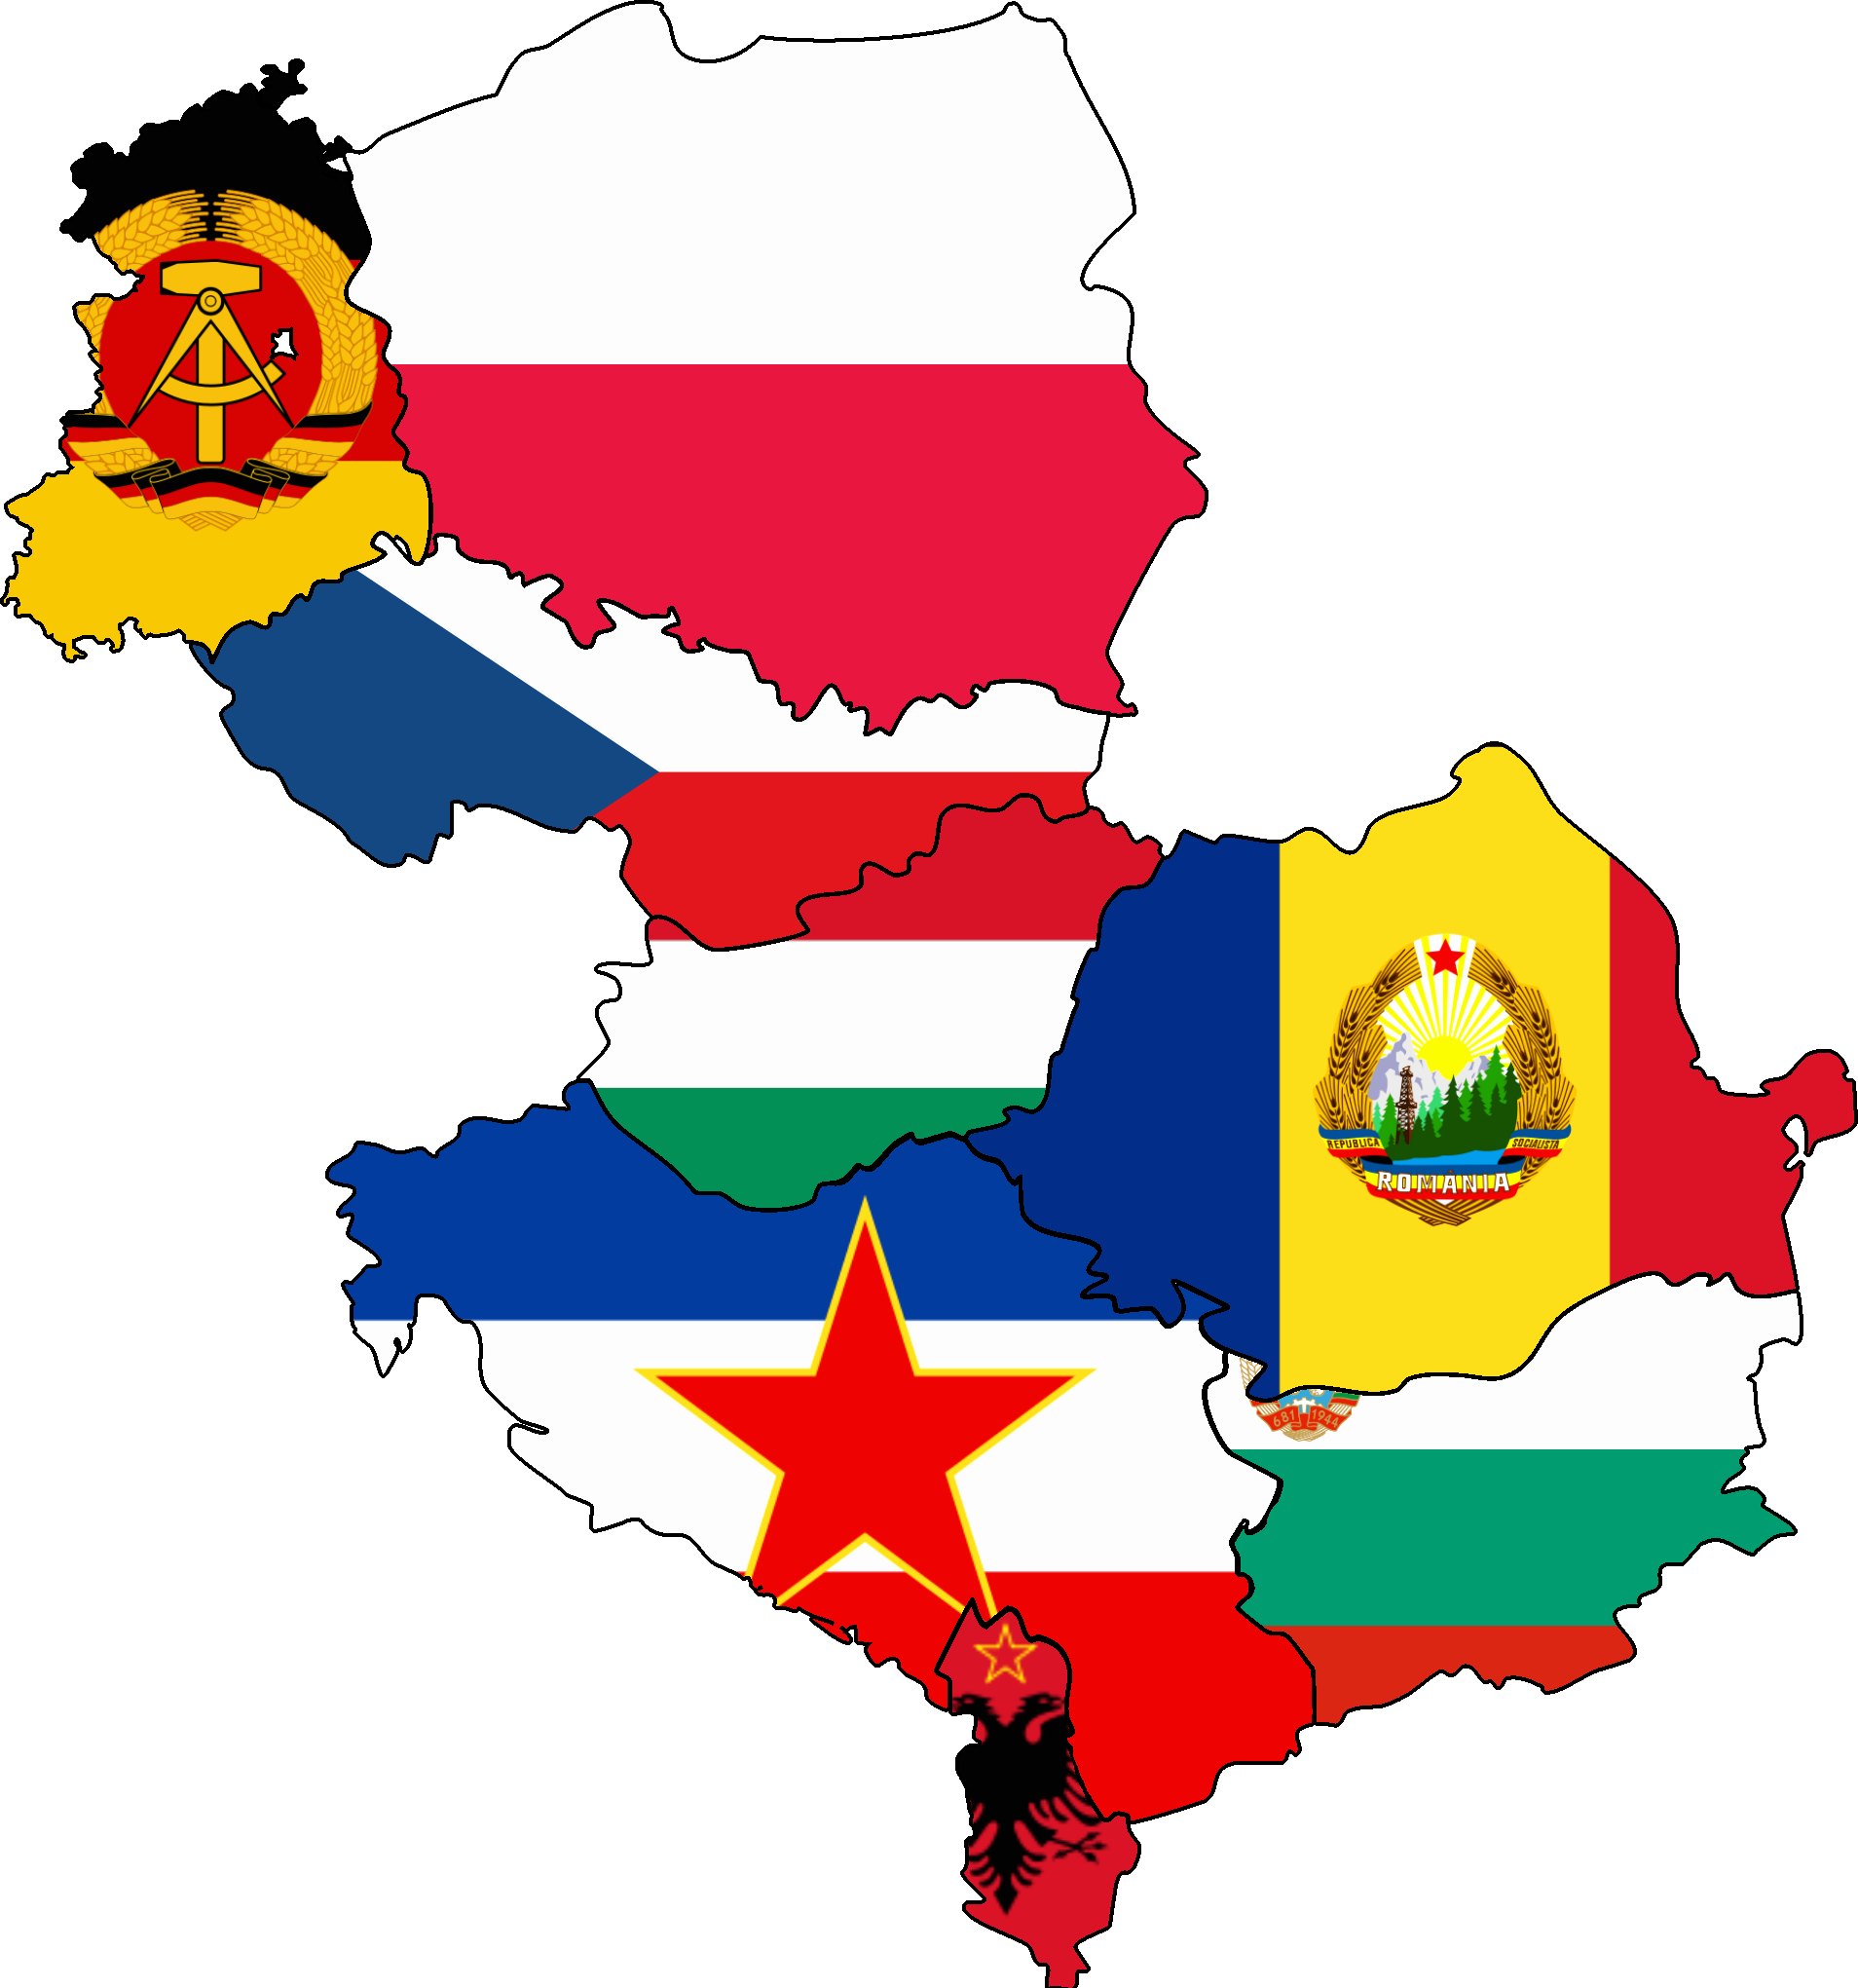 Countries group eastern bloc. Europe clipart colored